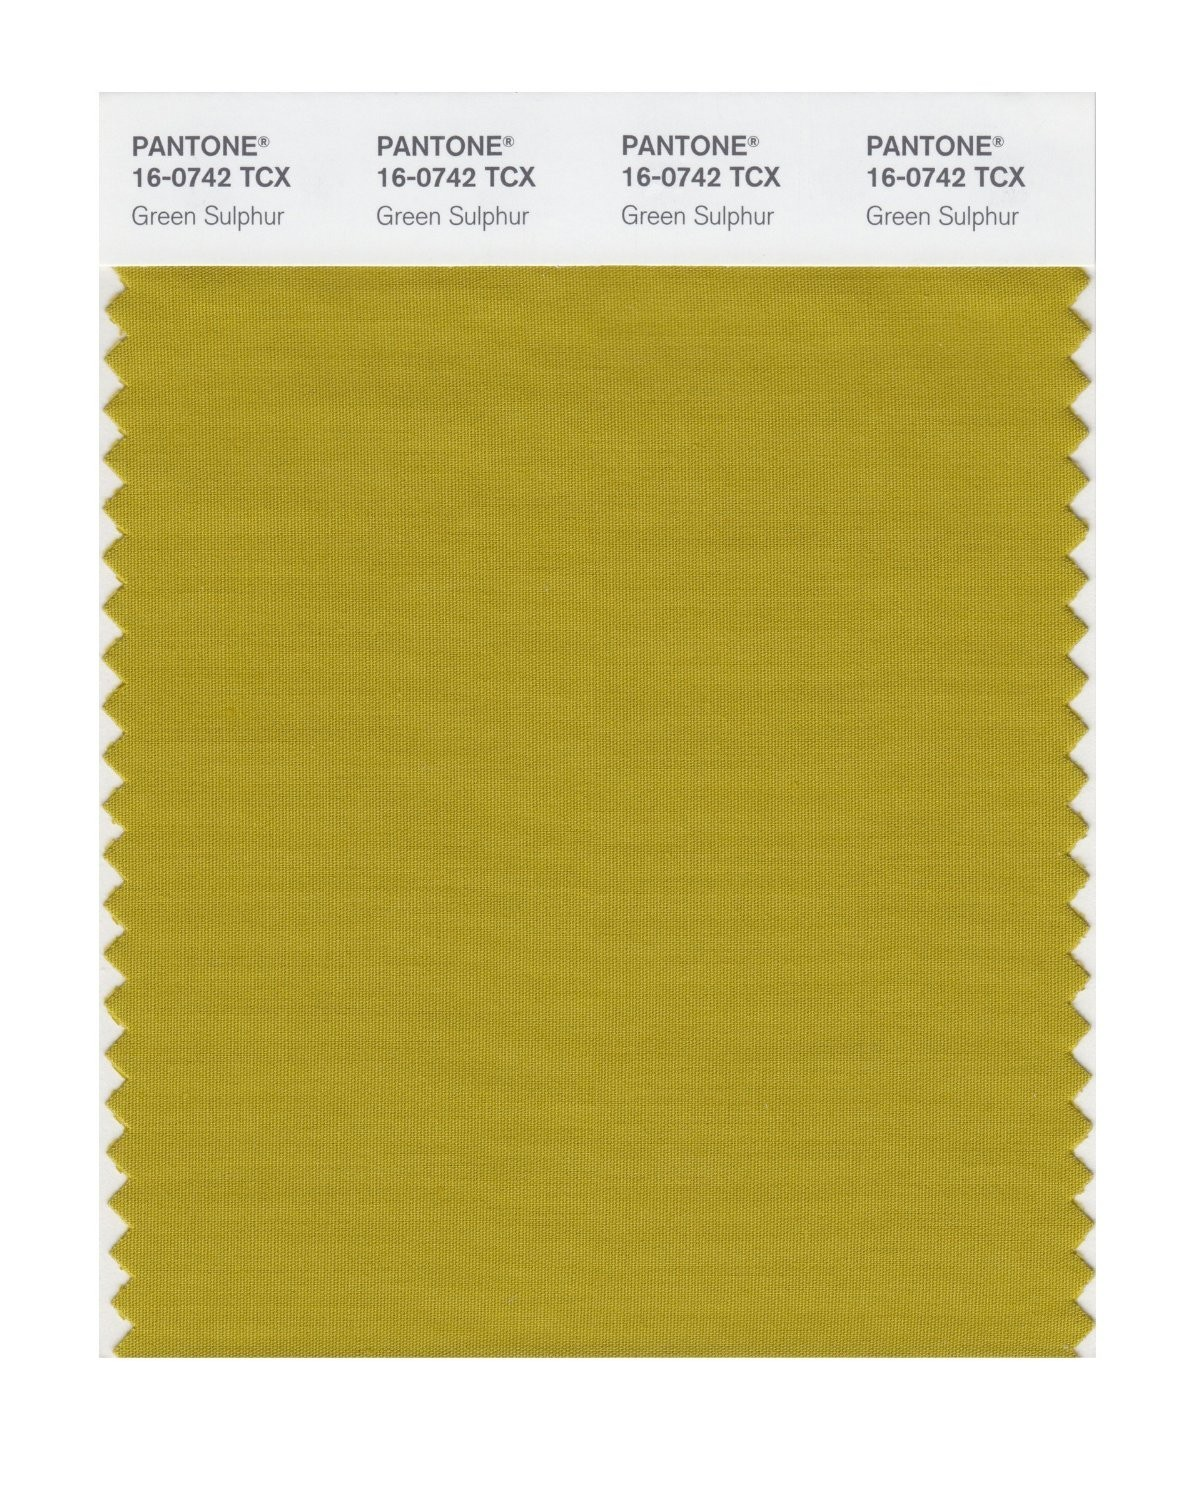 Pantone 16-0742 TCX Swatch Card Green Sulphur